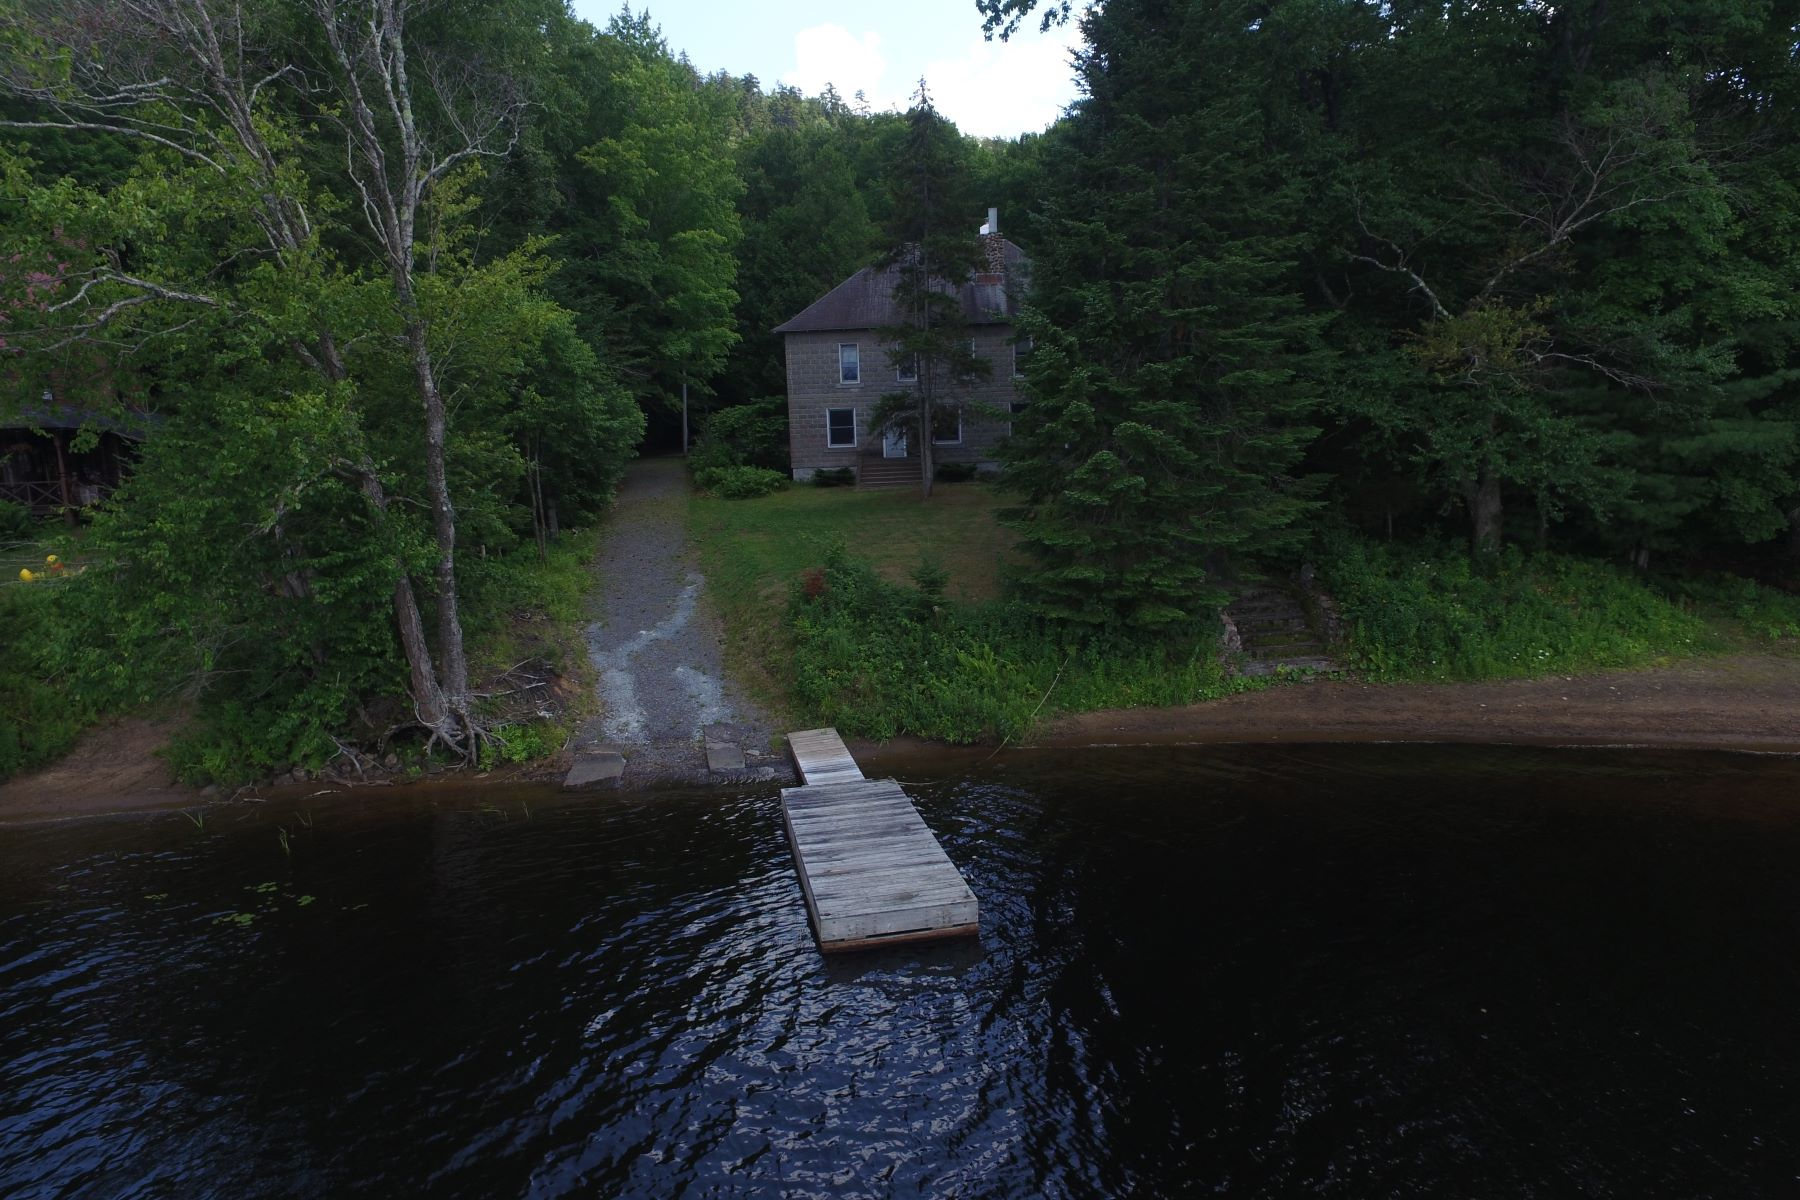 Single Family Homes for Active at Lake House 175 S Rondaxe Old Forge, New York 13420 United States